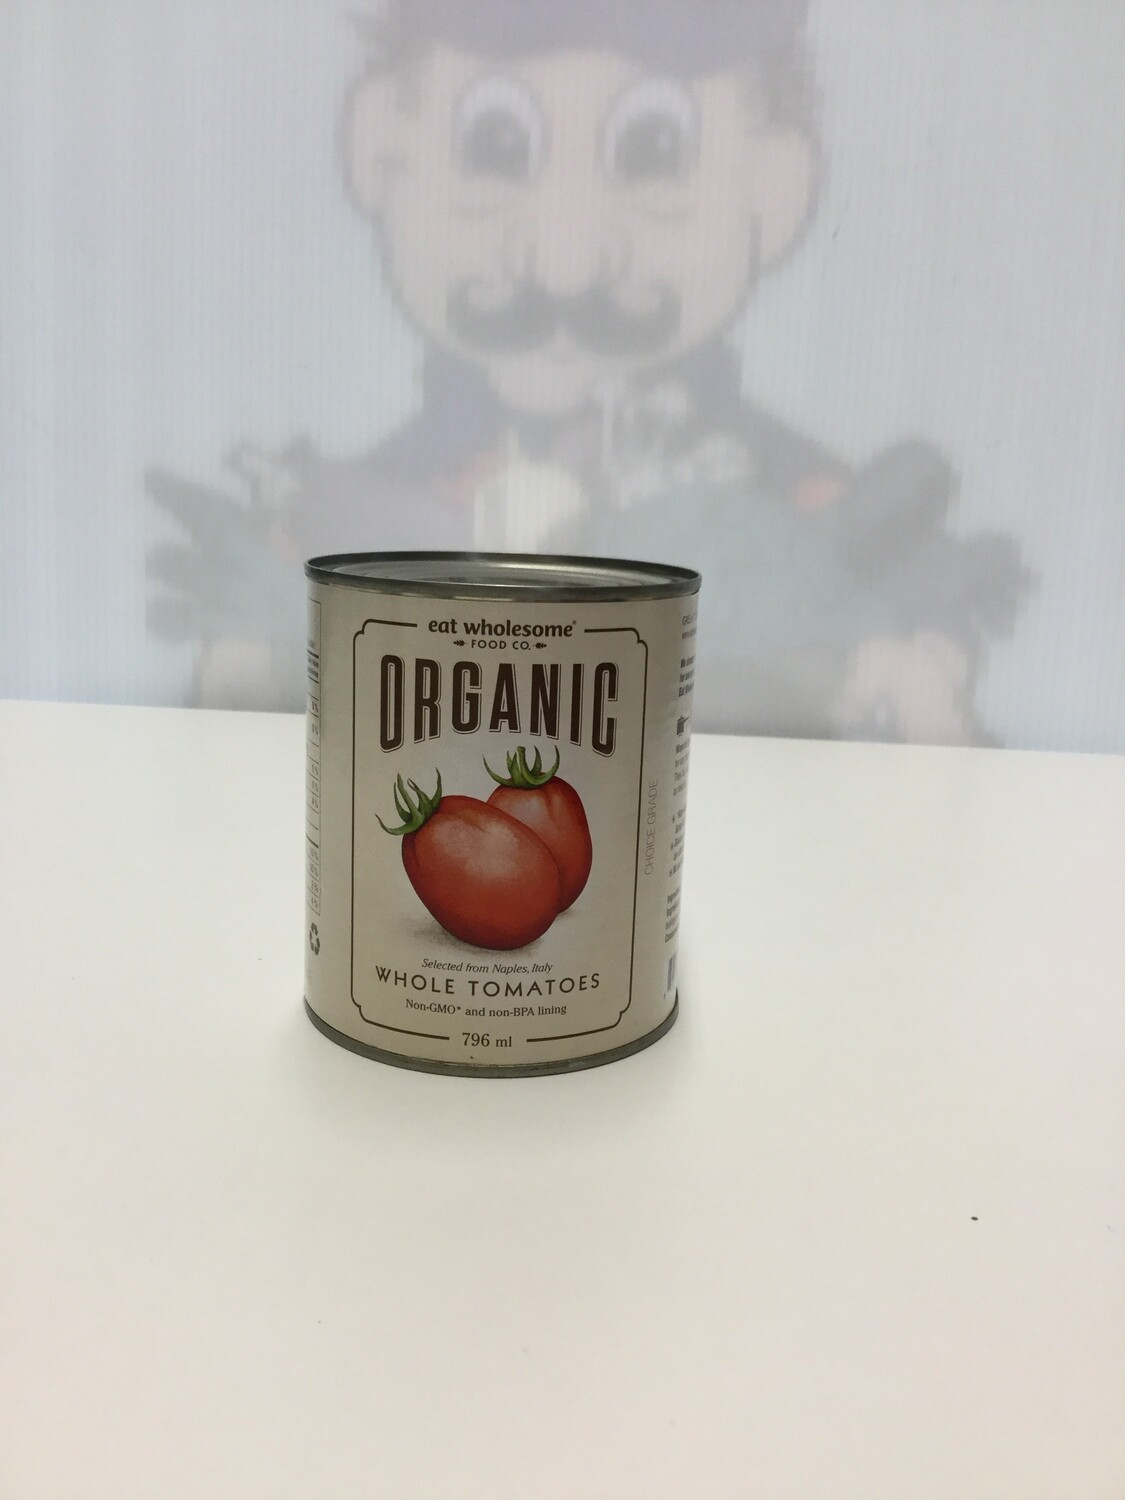 EAT WHOLESOME Whole Toms 796ml